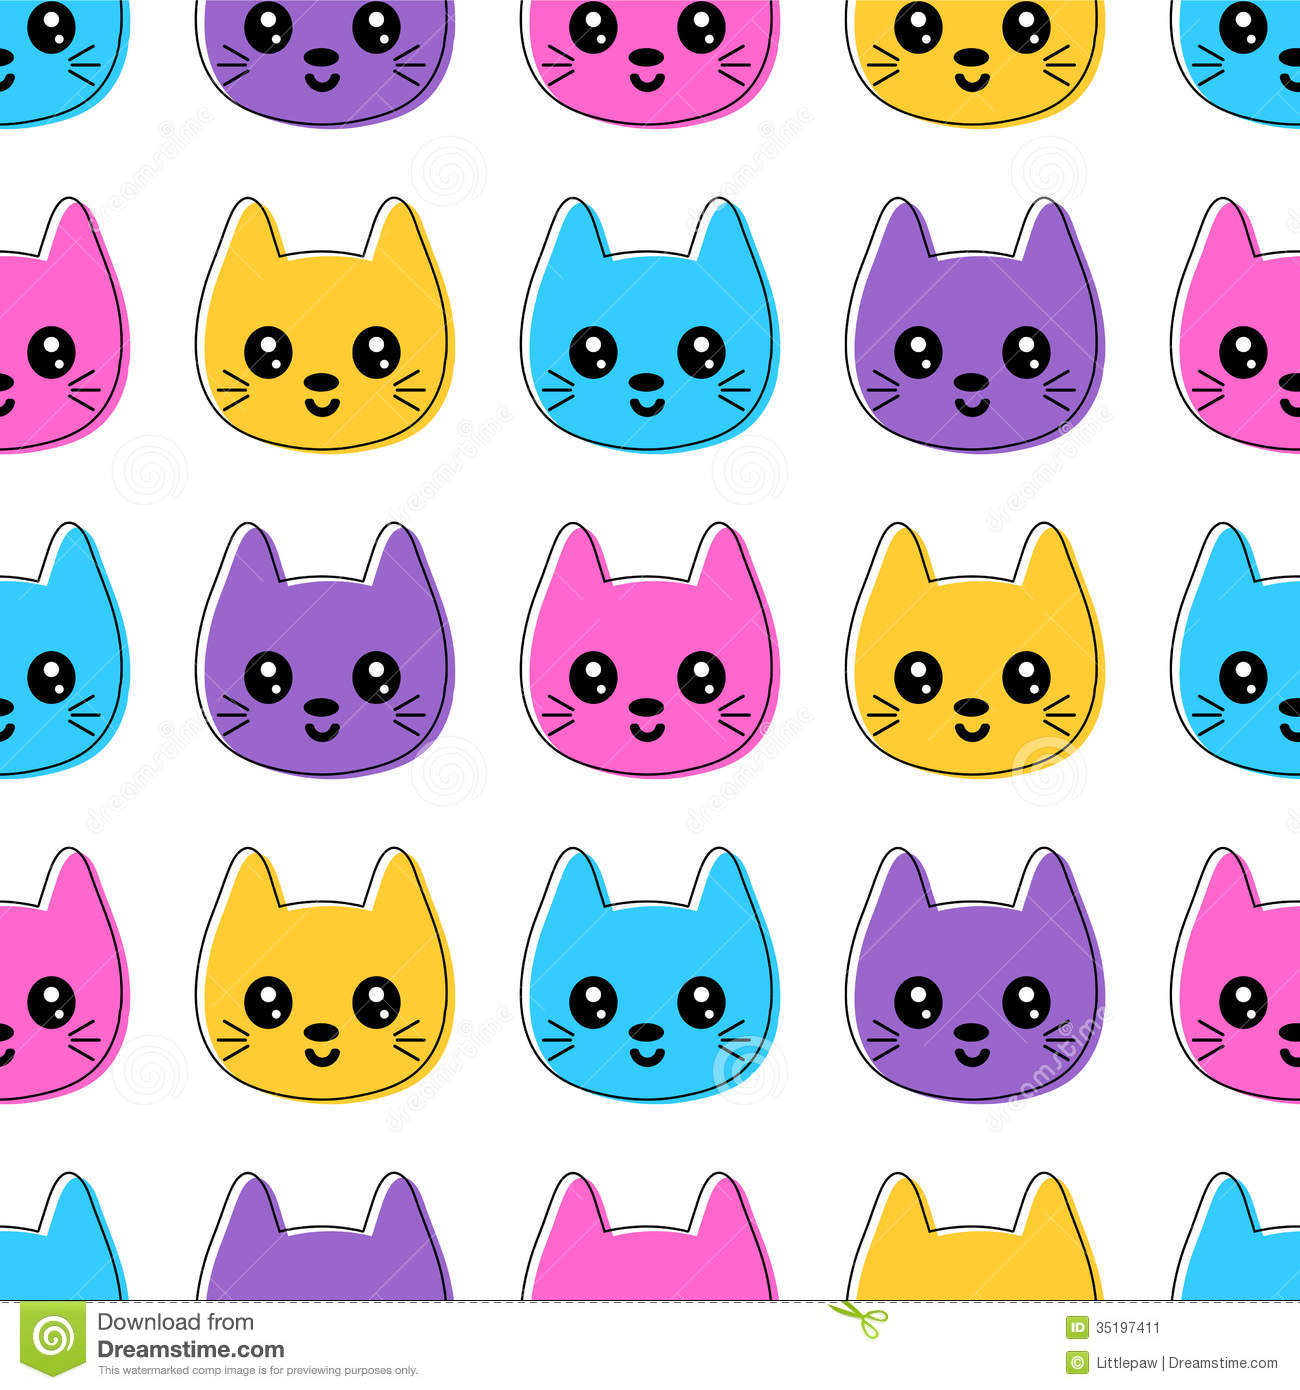 Cute Animal Print Wallpaper Cute Seamless Pattern With Colorful Cat Faces Stock Image